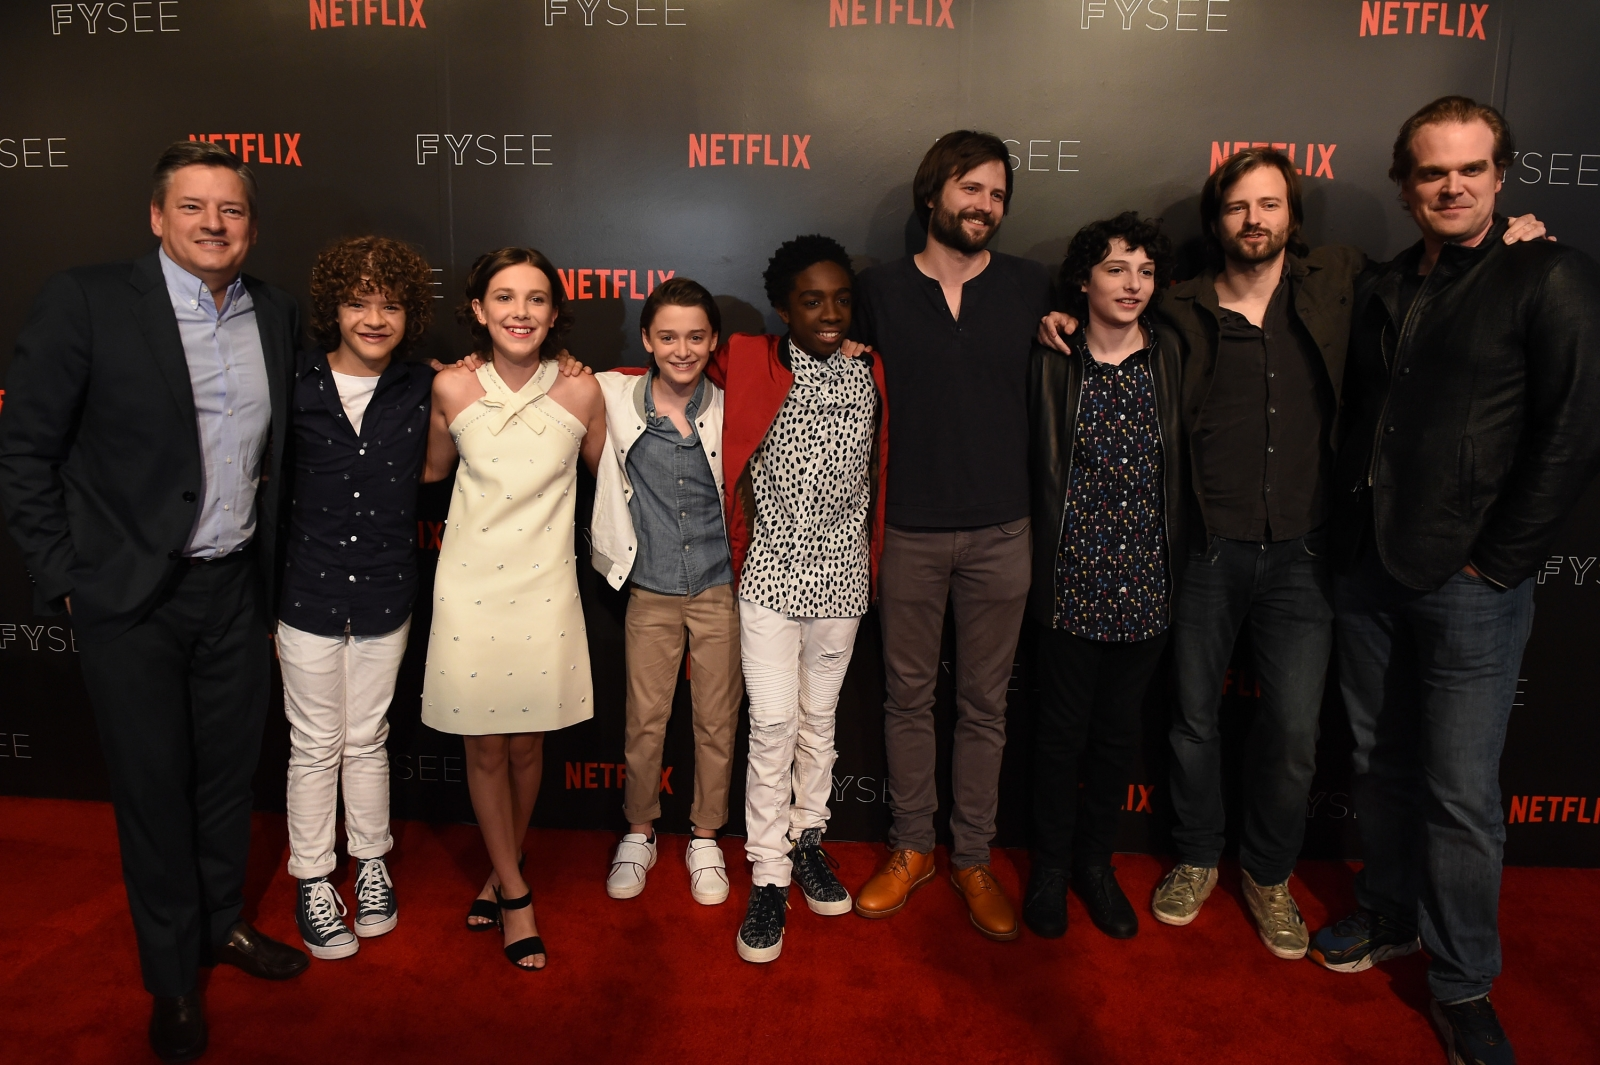 Stranger Things season 2 will put more focus on the Horror element